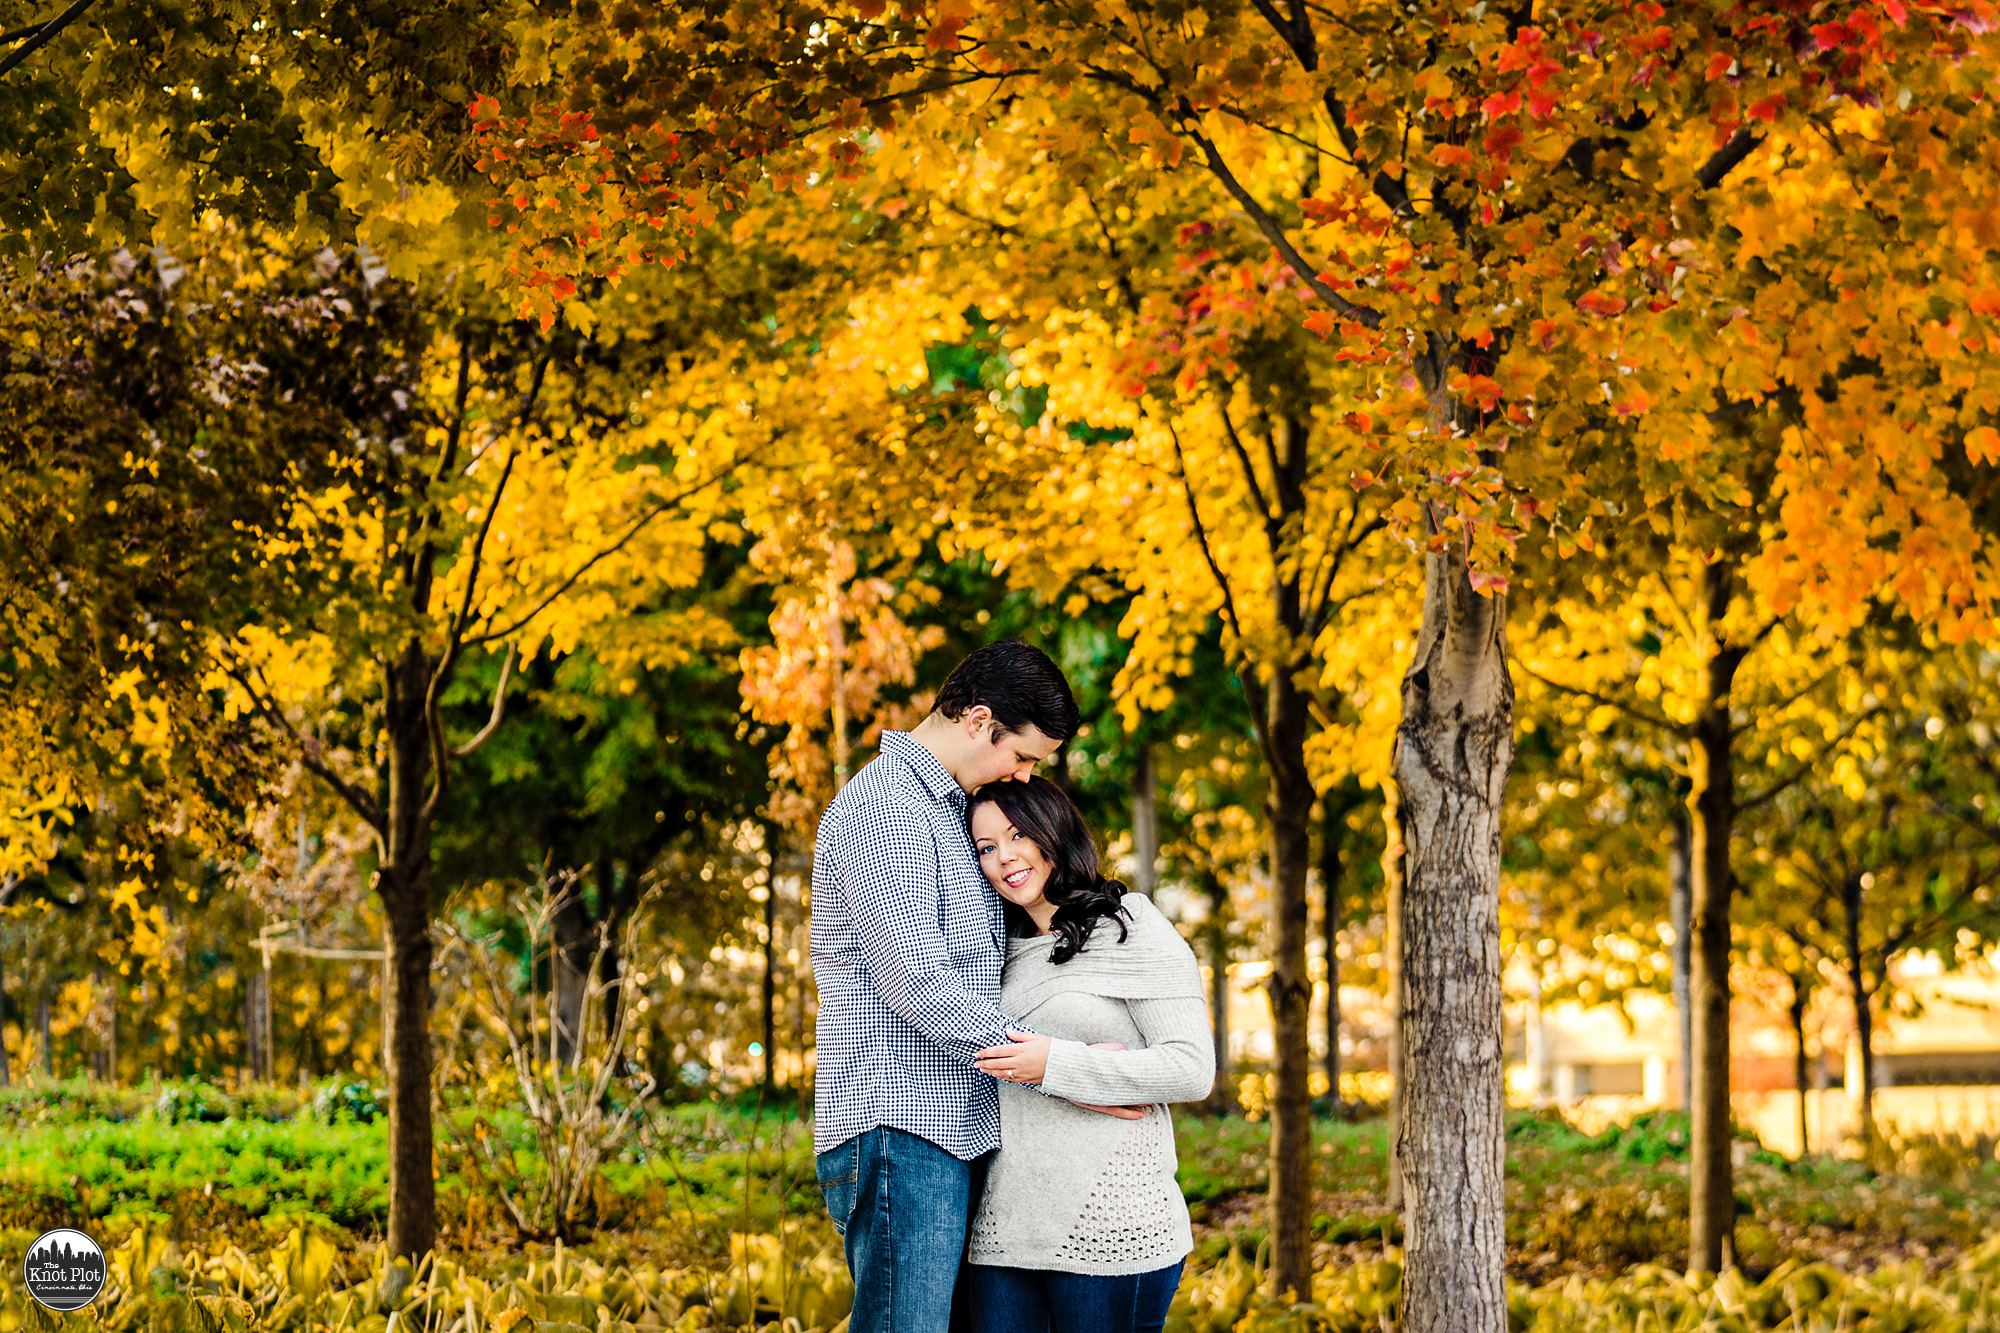 Smale-Park-Engagement-Session-Photography-5.jpg